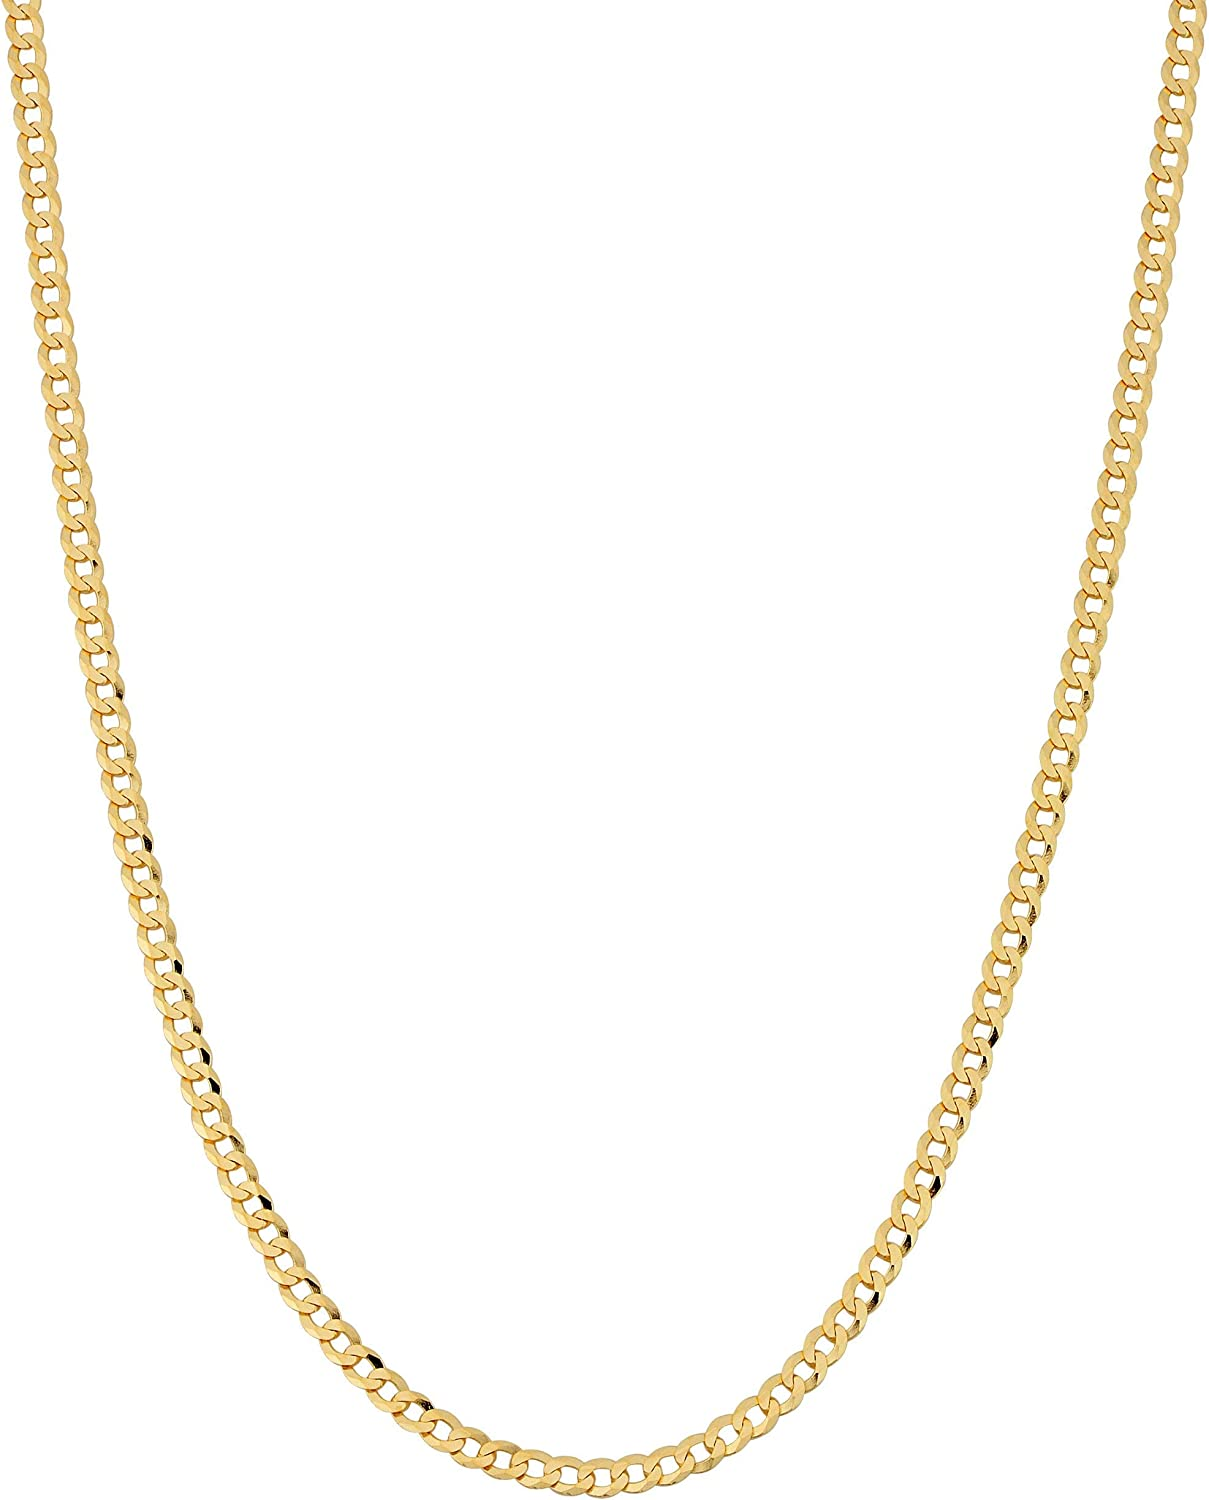 ARGENTO REALE Max 56% OFF 14K Gold Fashion 2.25MM Curb Cuban Gol Chain Necklace